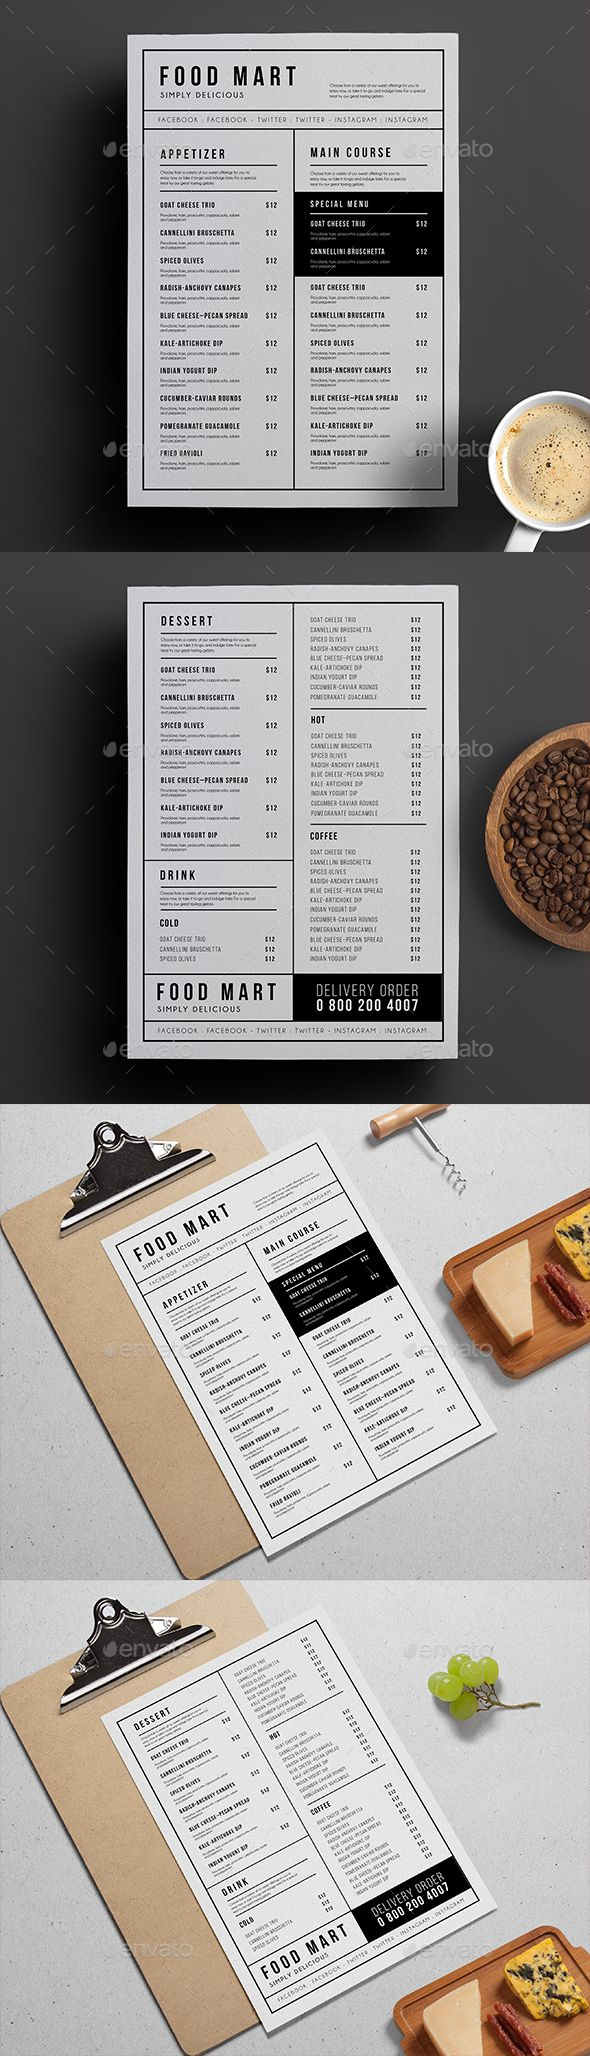 Simple Restaurant Menu u2014 Photoshop PSD steak